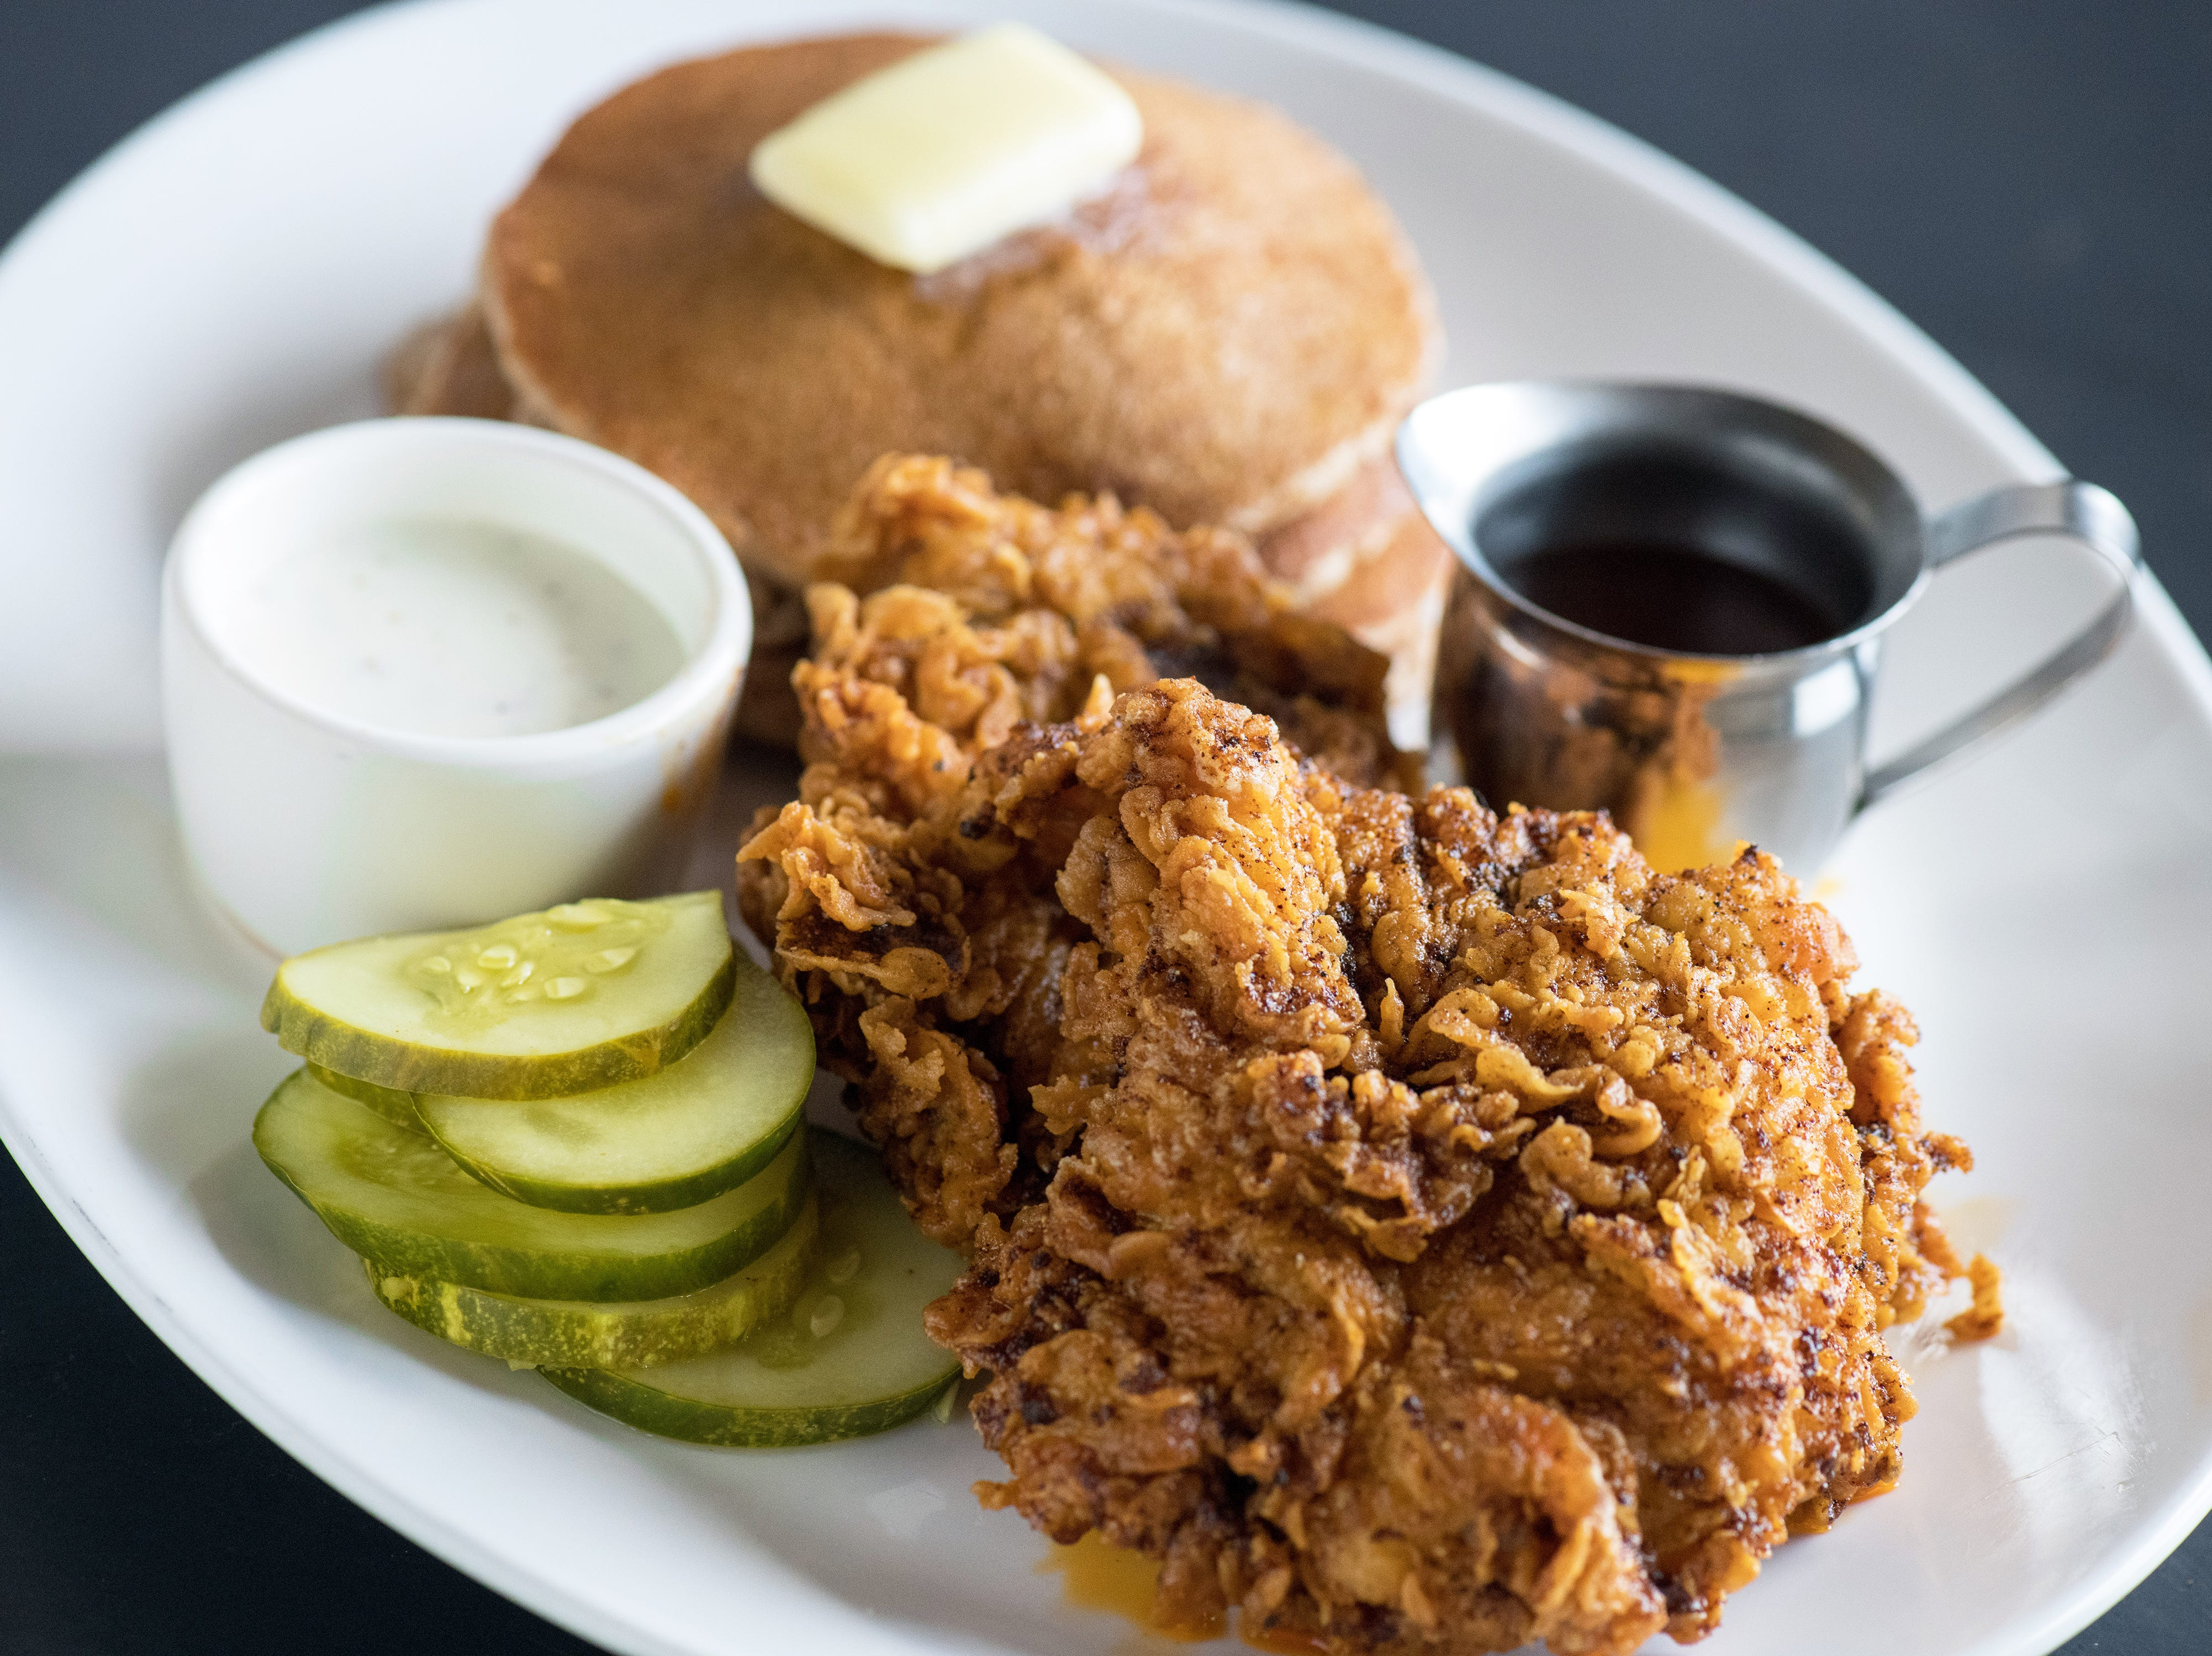 Yard House's Nashville Hot Chicken features all white meat, spicy sweet slaw and aged white cheddar spread.